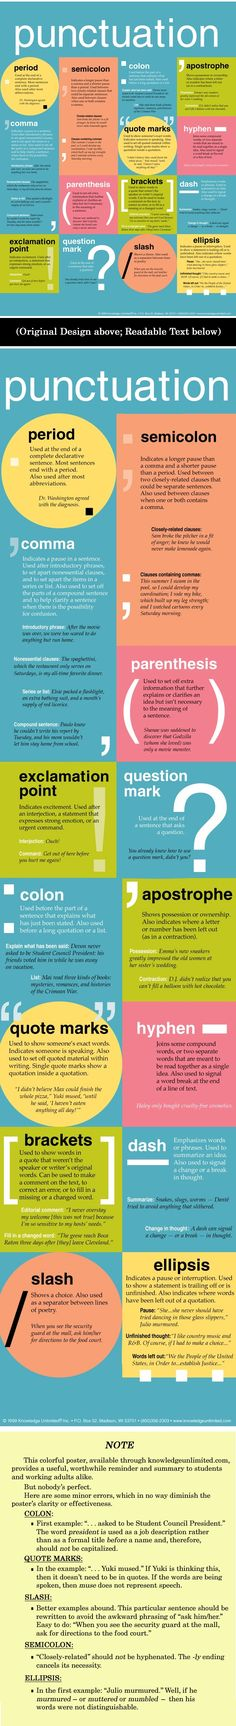 #English #punctuation